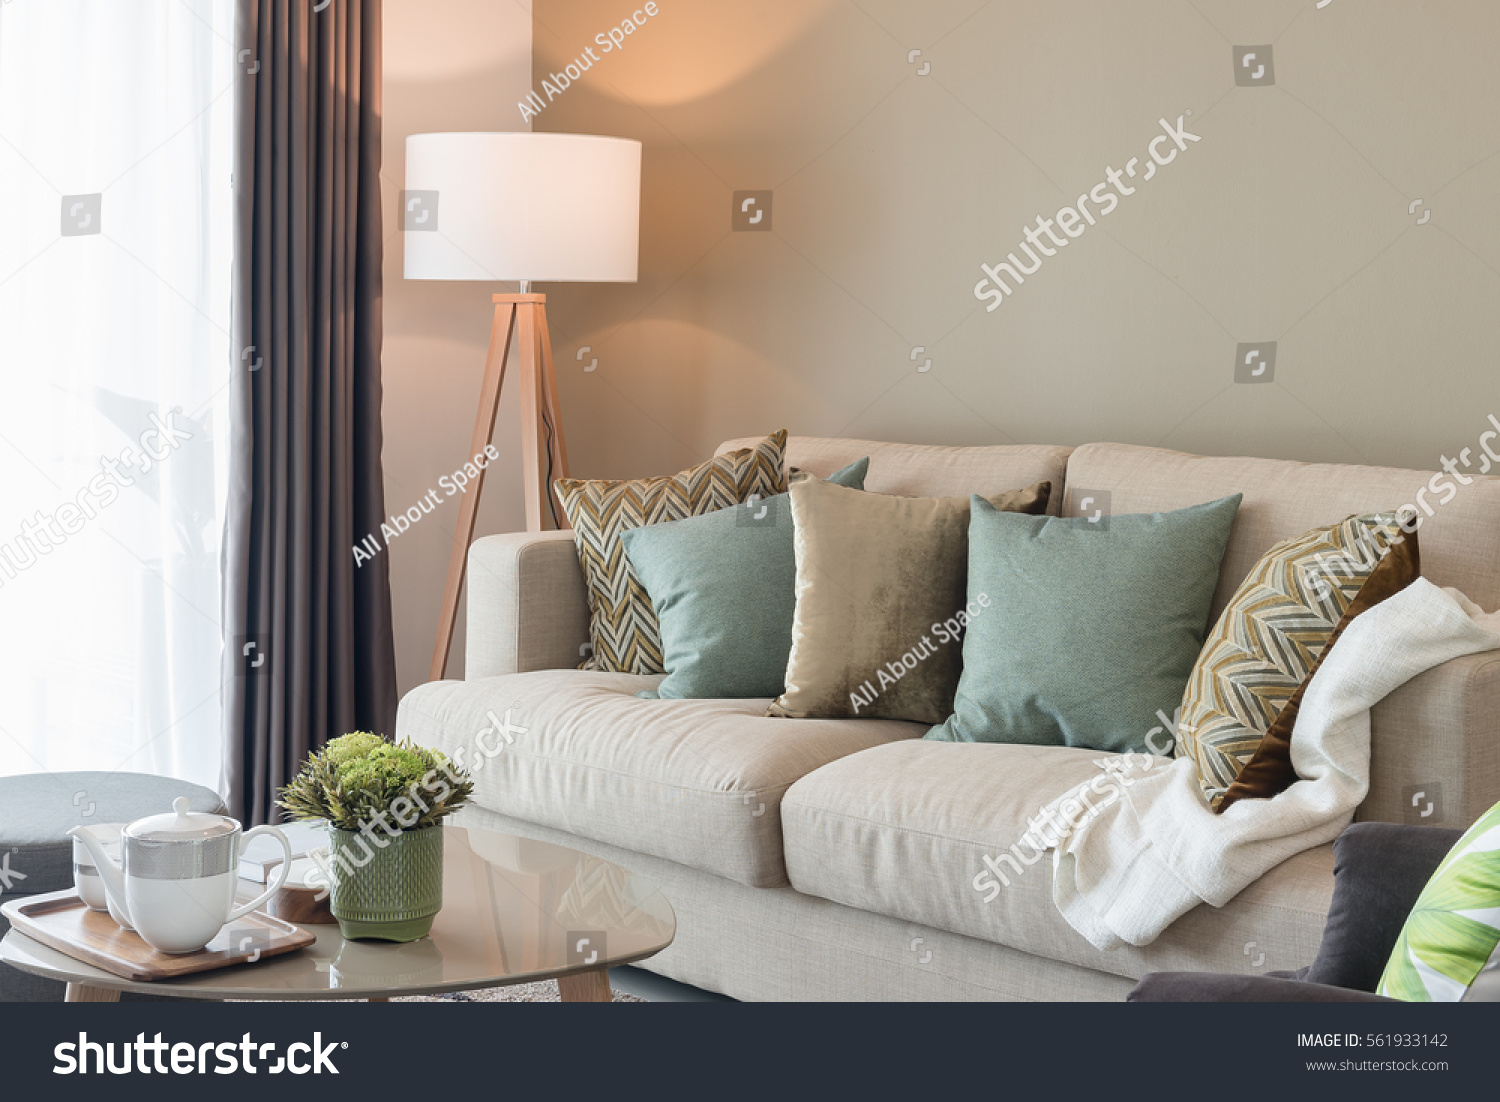 Modern Living Room Green Pillows On Stock Photo 561933142 Shutterstock